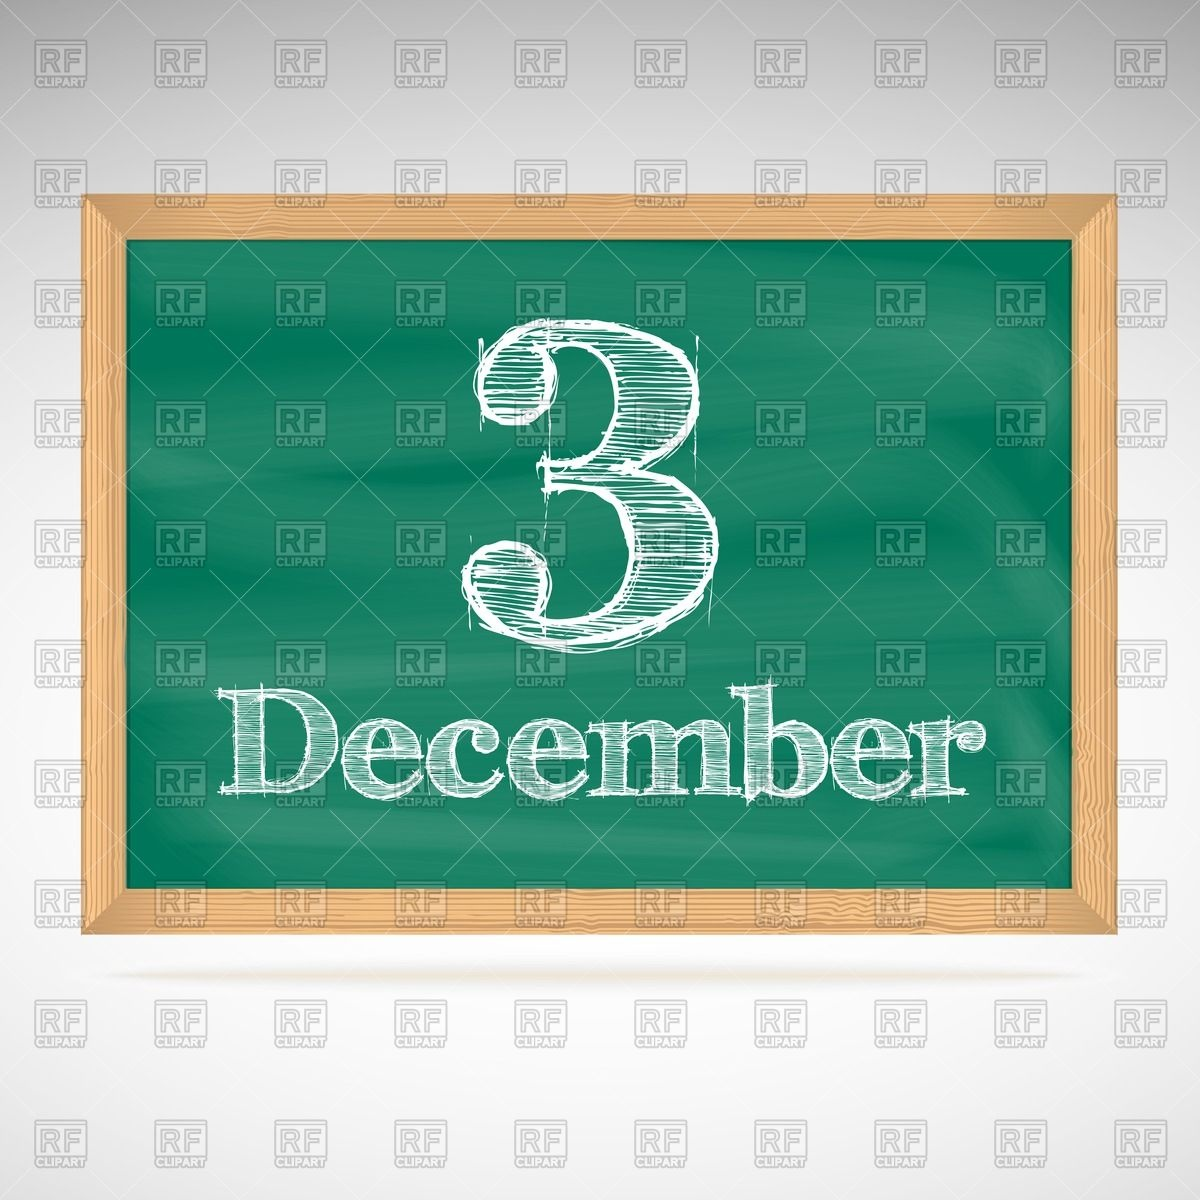 Calendar december 3 clipart clipart royalty free download School chalkboard calendar with inscription in chalk December 3 ... clipart royalty free download